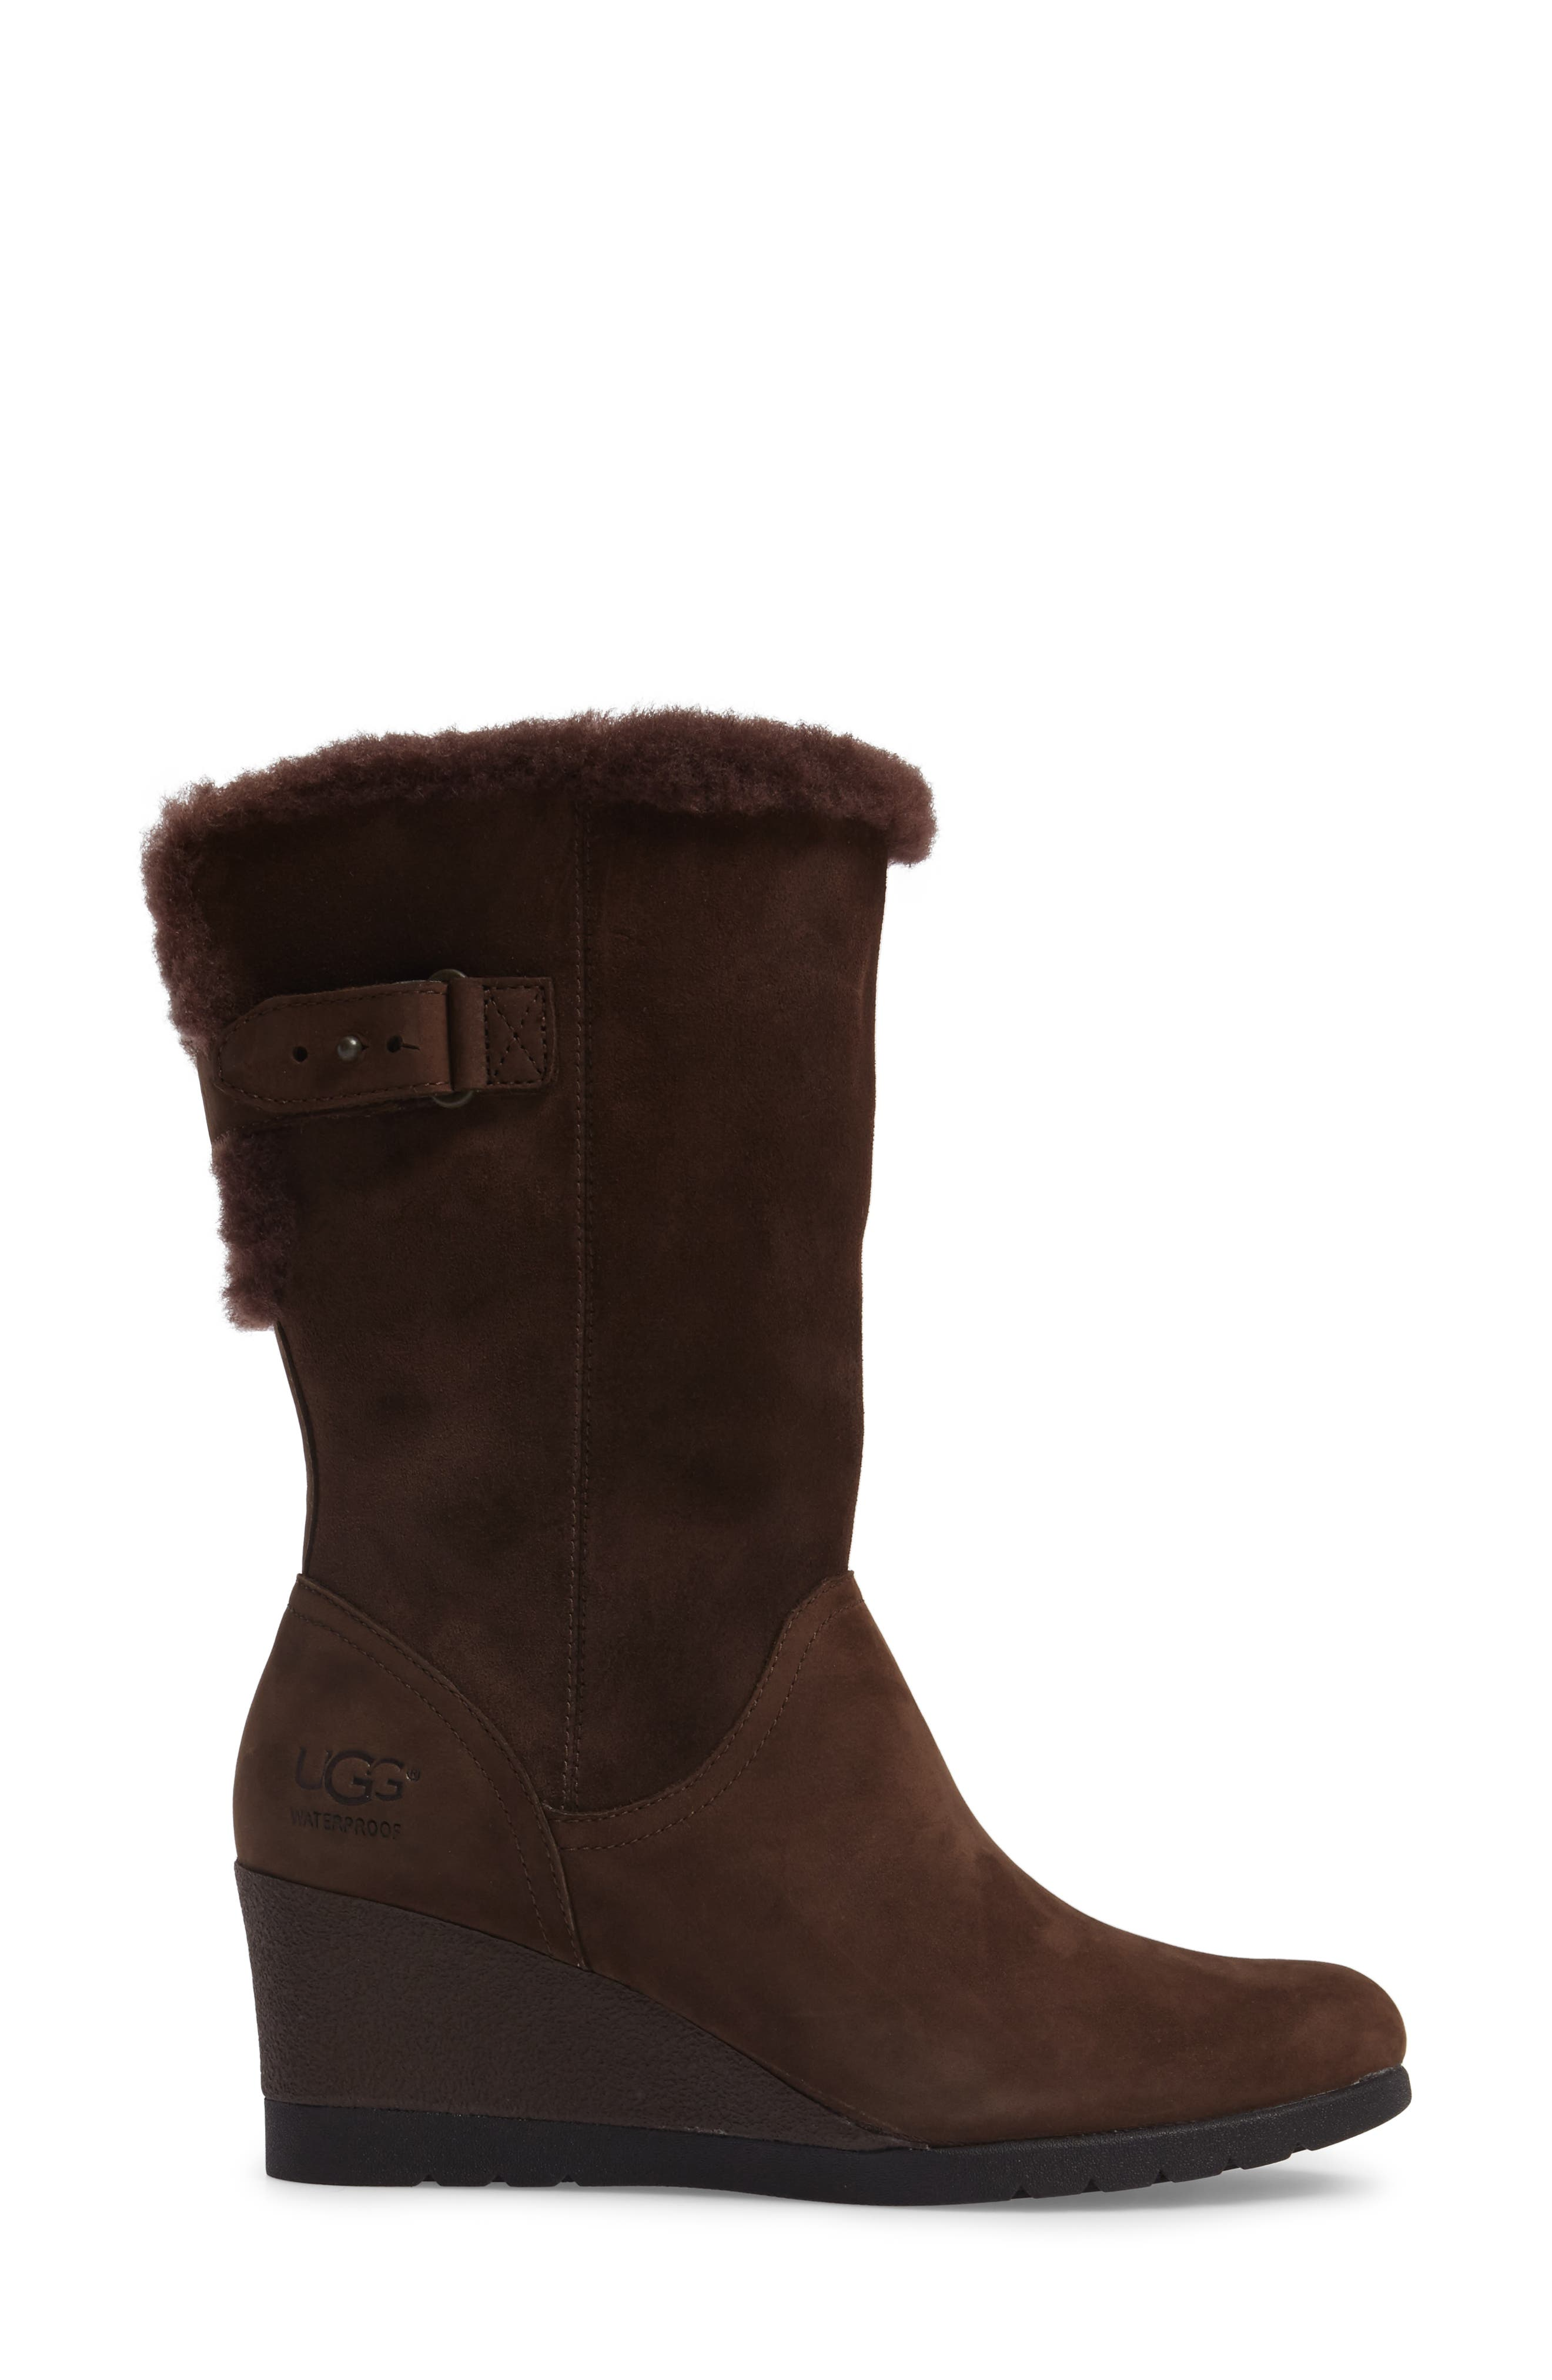 Edelina Waterproof Wedge Boot,                             Alternate thumbnail 3, color,                             Grizzly Leather